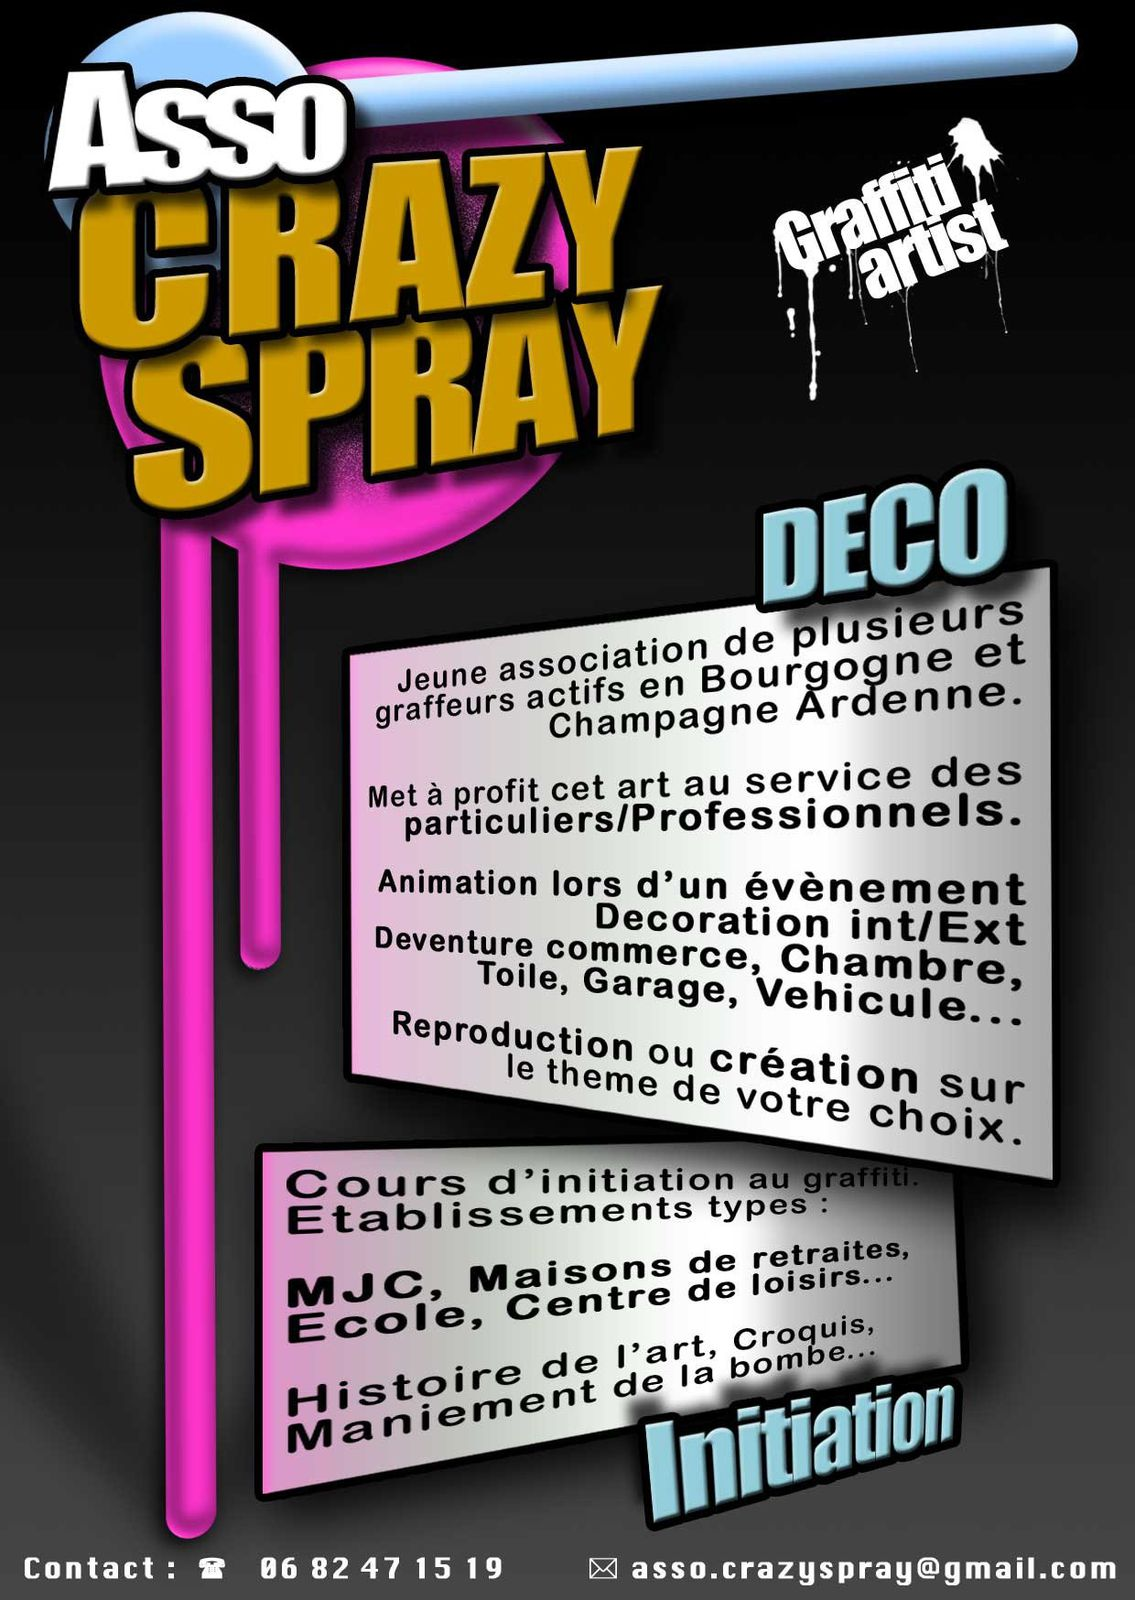 L'Association Crazy Spray